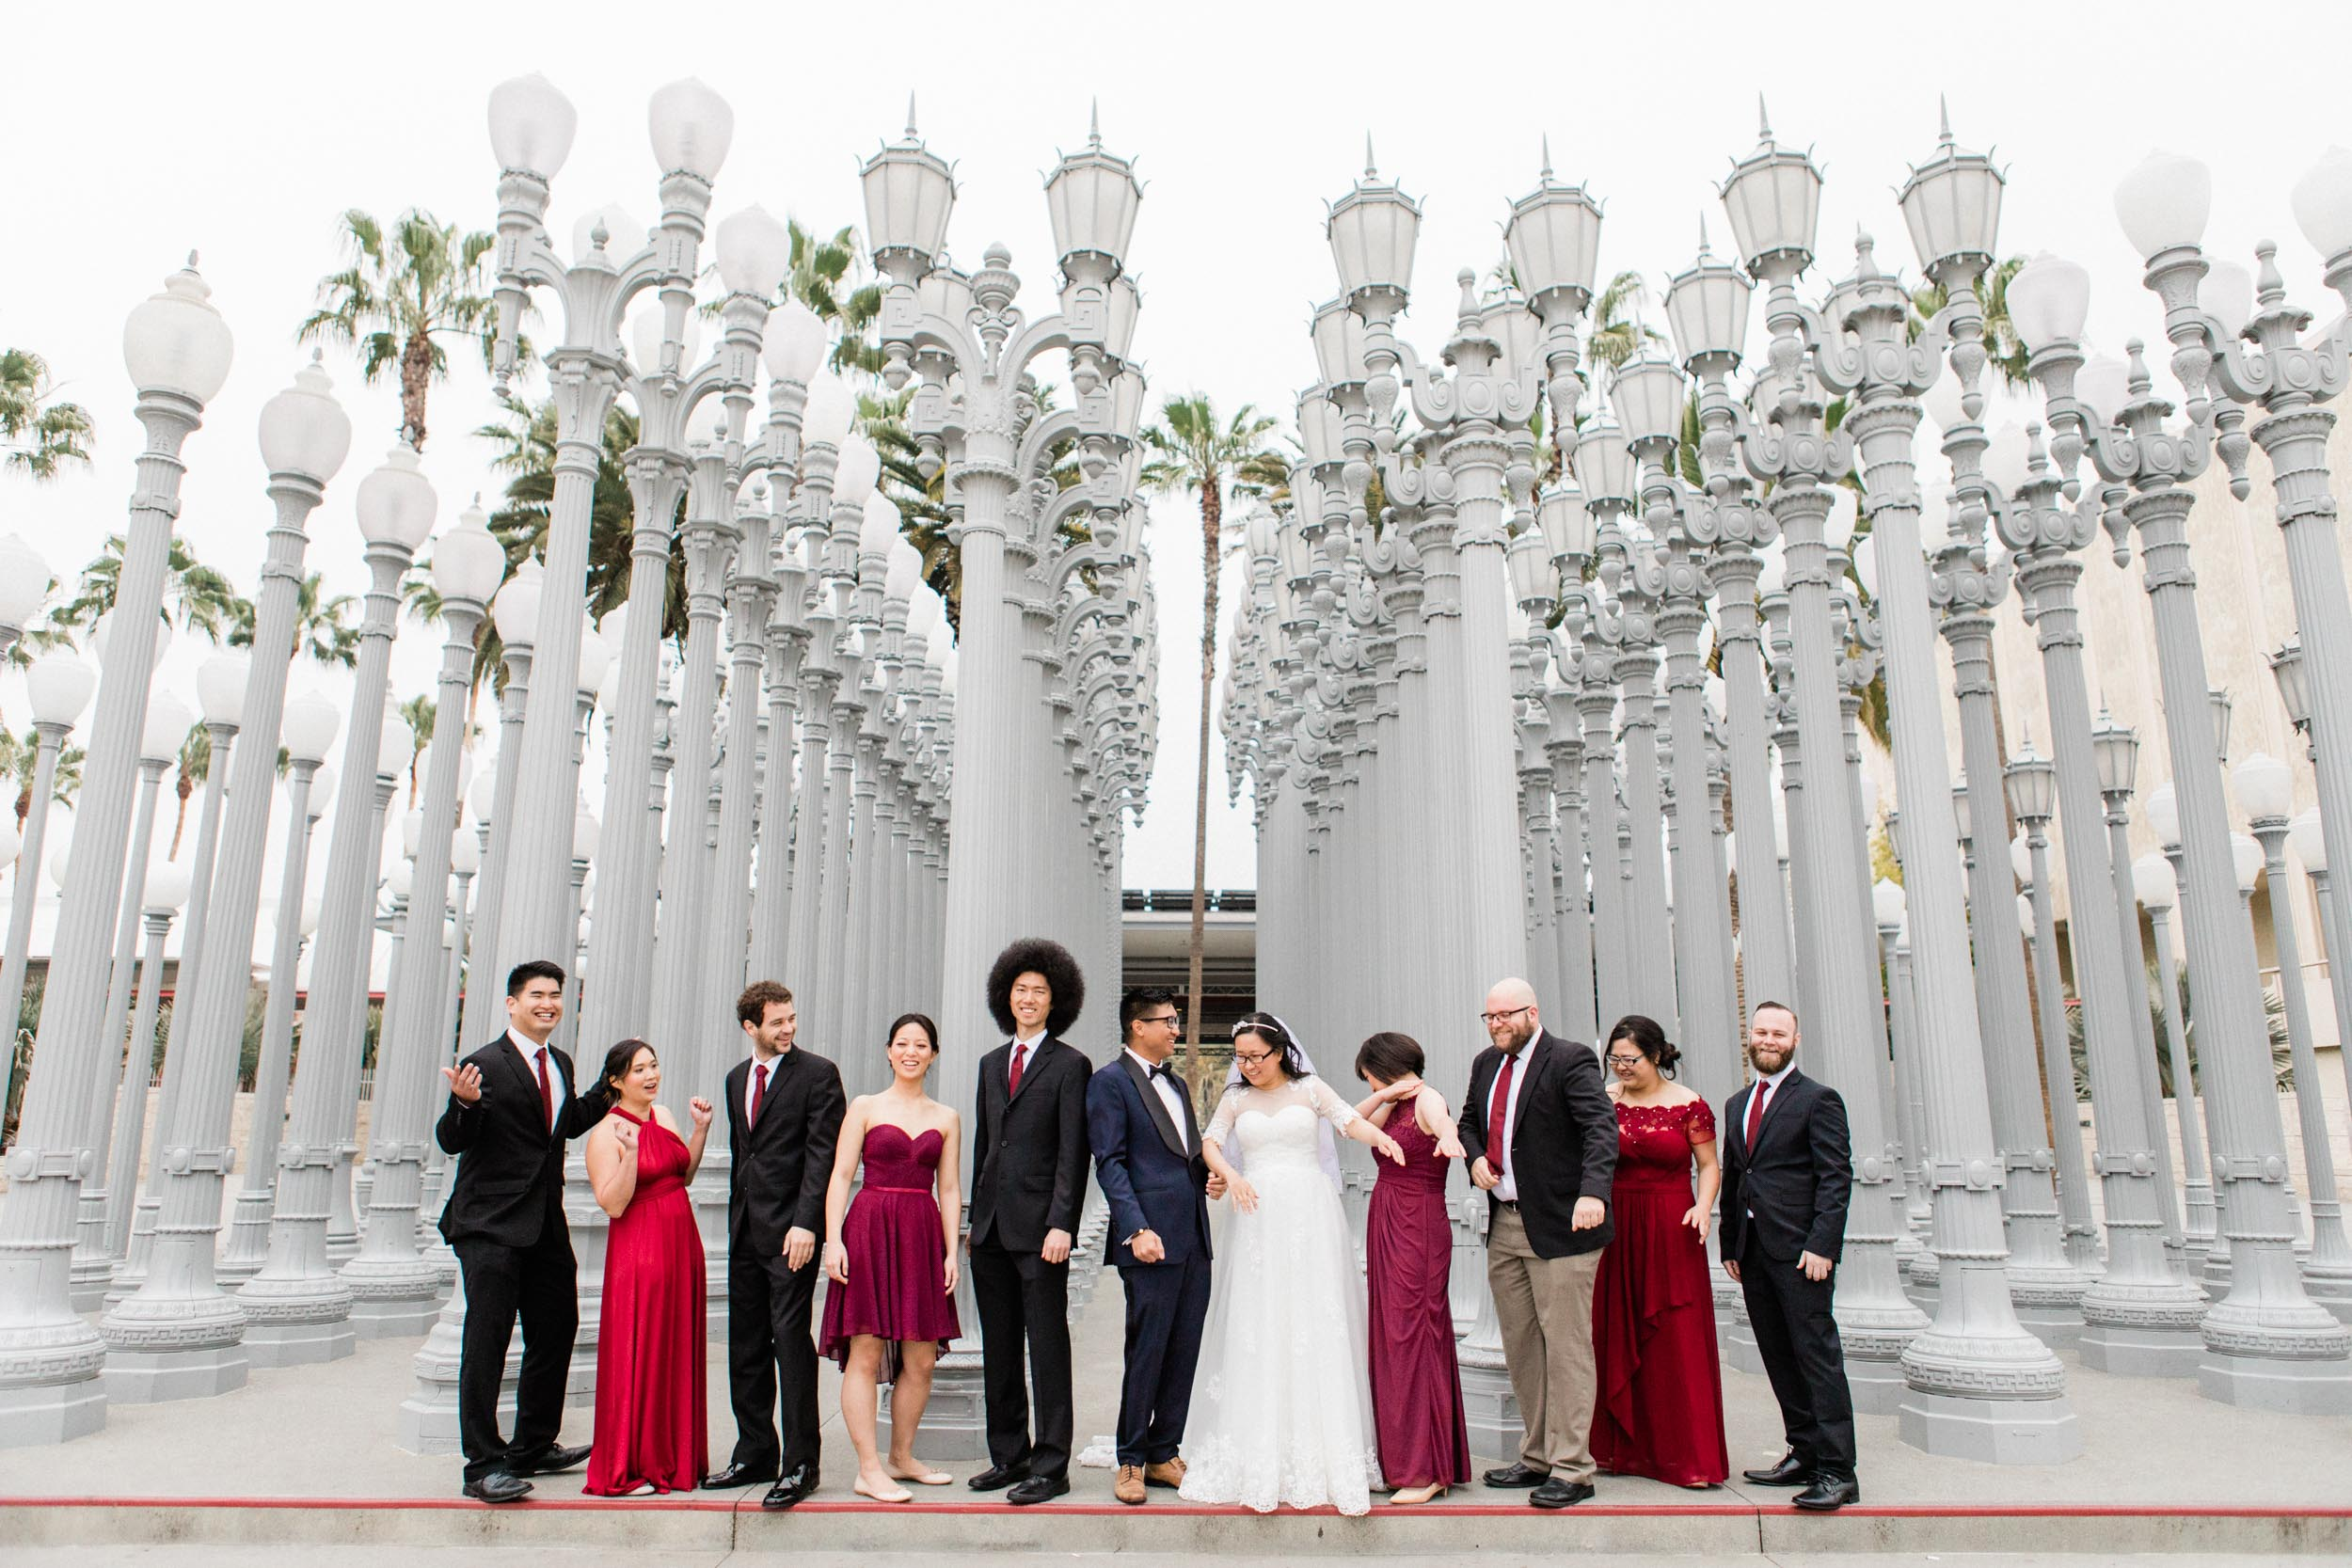 BKM-Photography-LACMA-Los-Angeles-Wedding-Photographer-0026.jpg